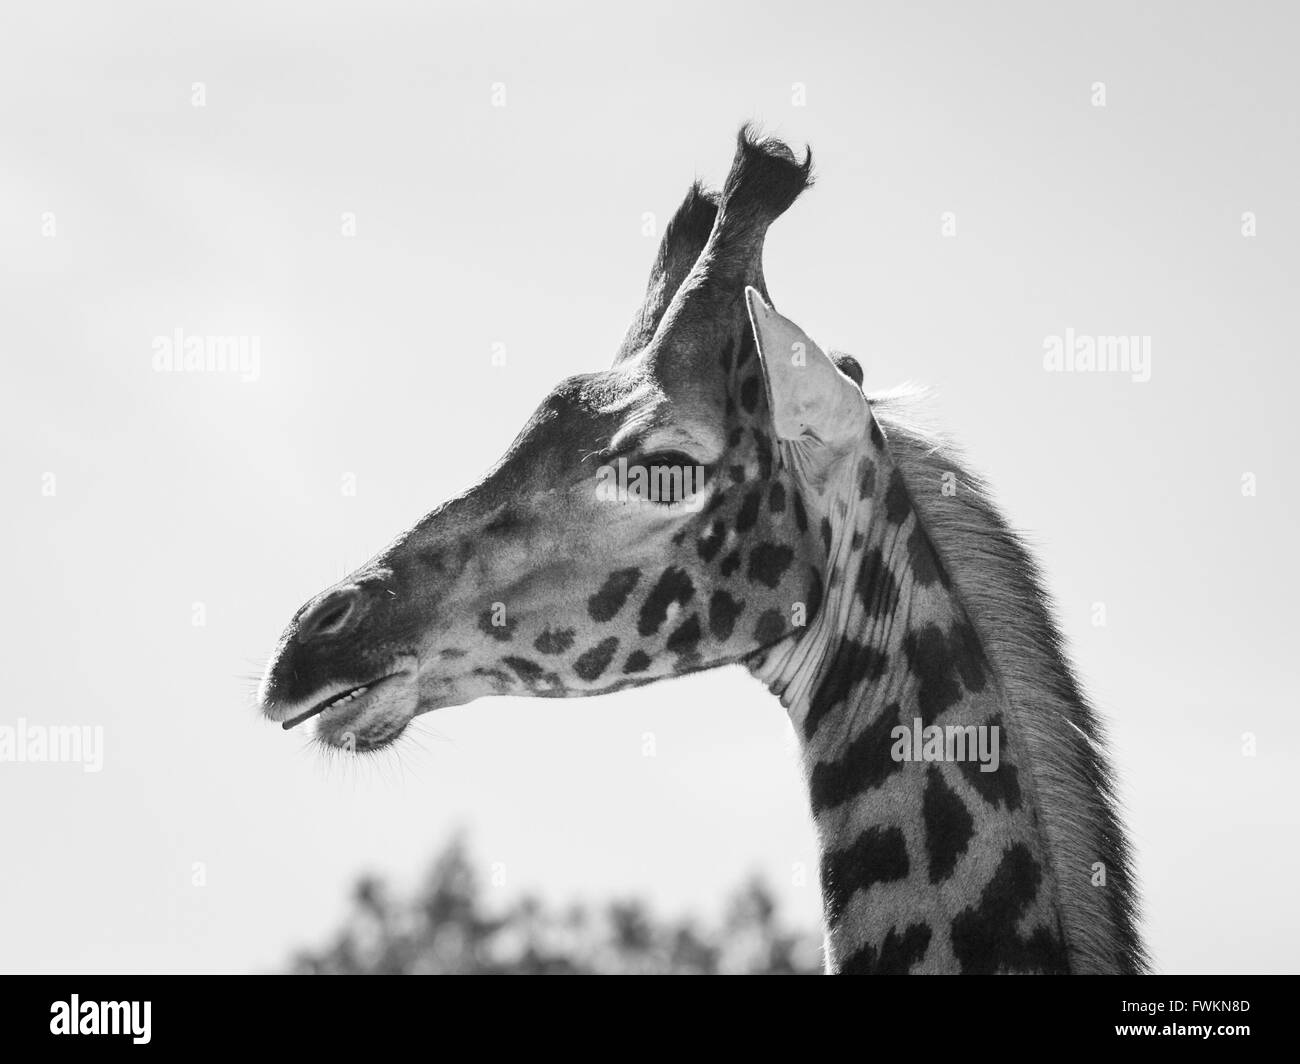 Black and white image of head of giraffe giraffa camelopardalis against sky in arusha